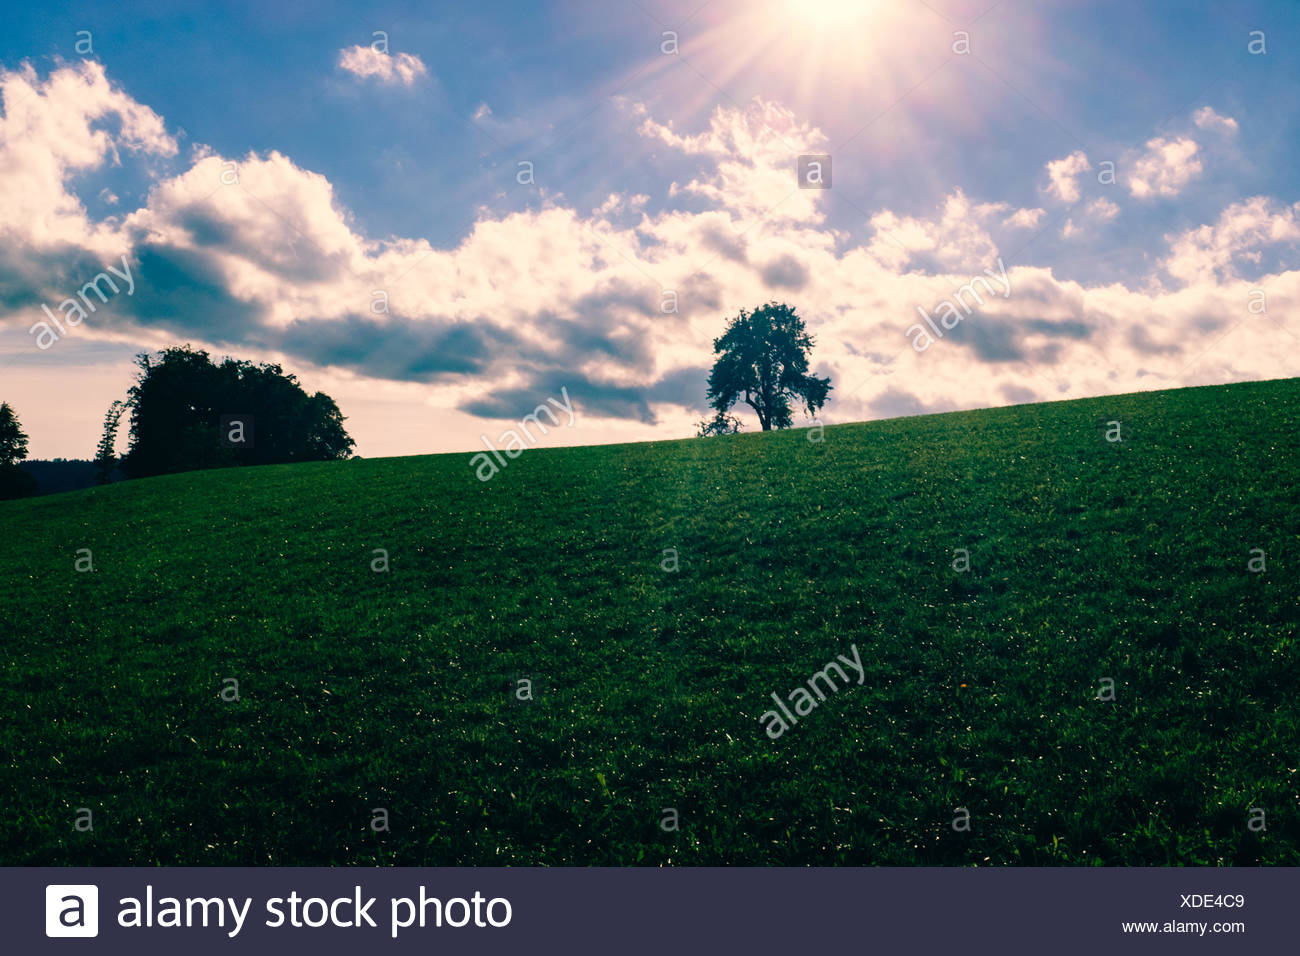 Scenic View Of Landscape Against Sky On Sunny Day Stock Photo